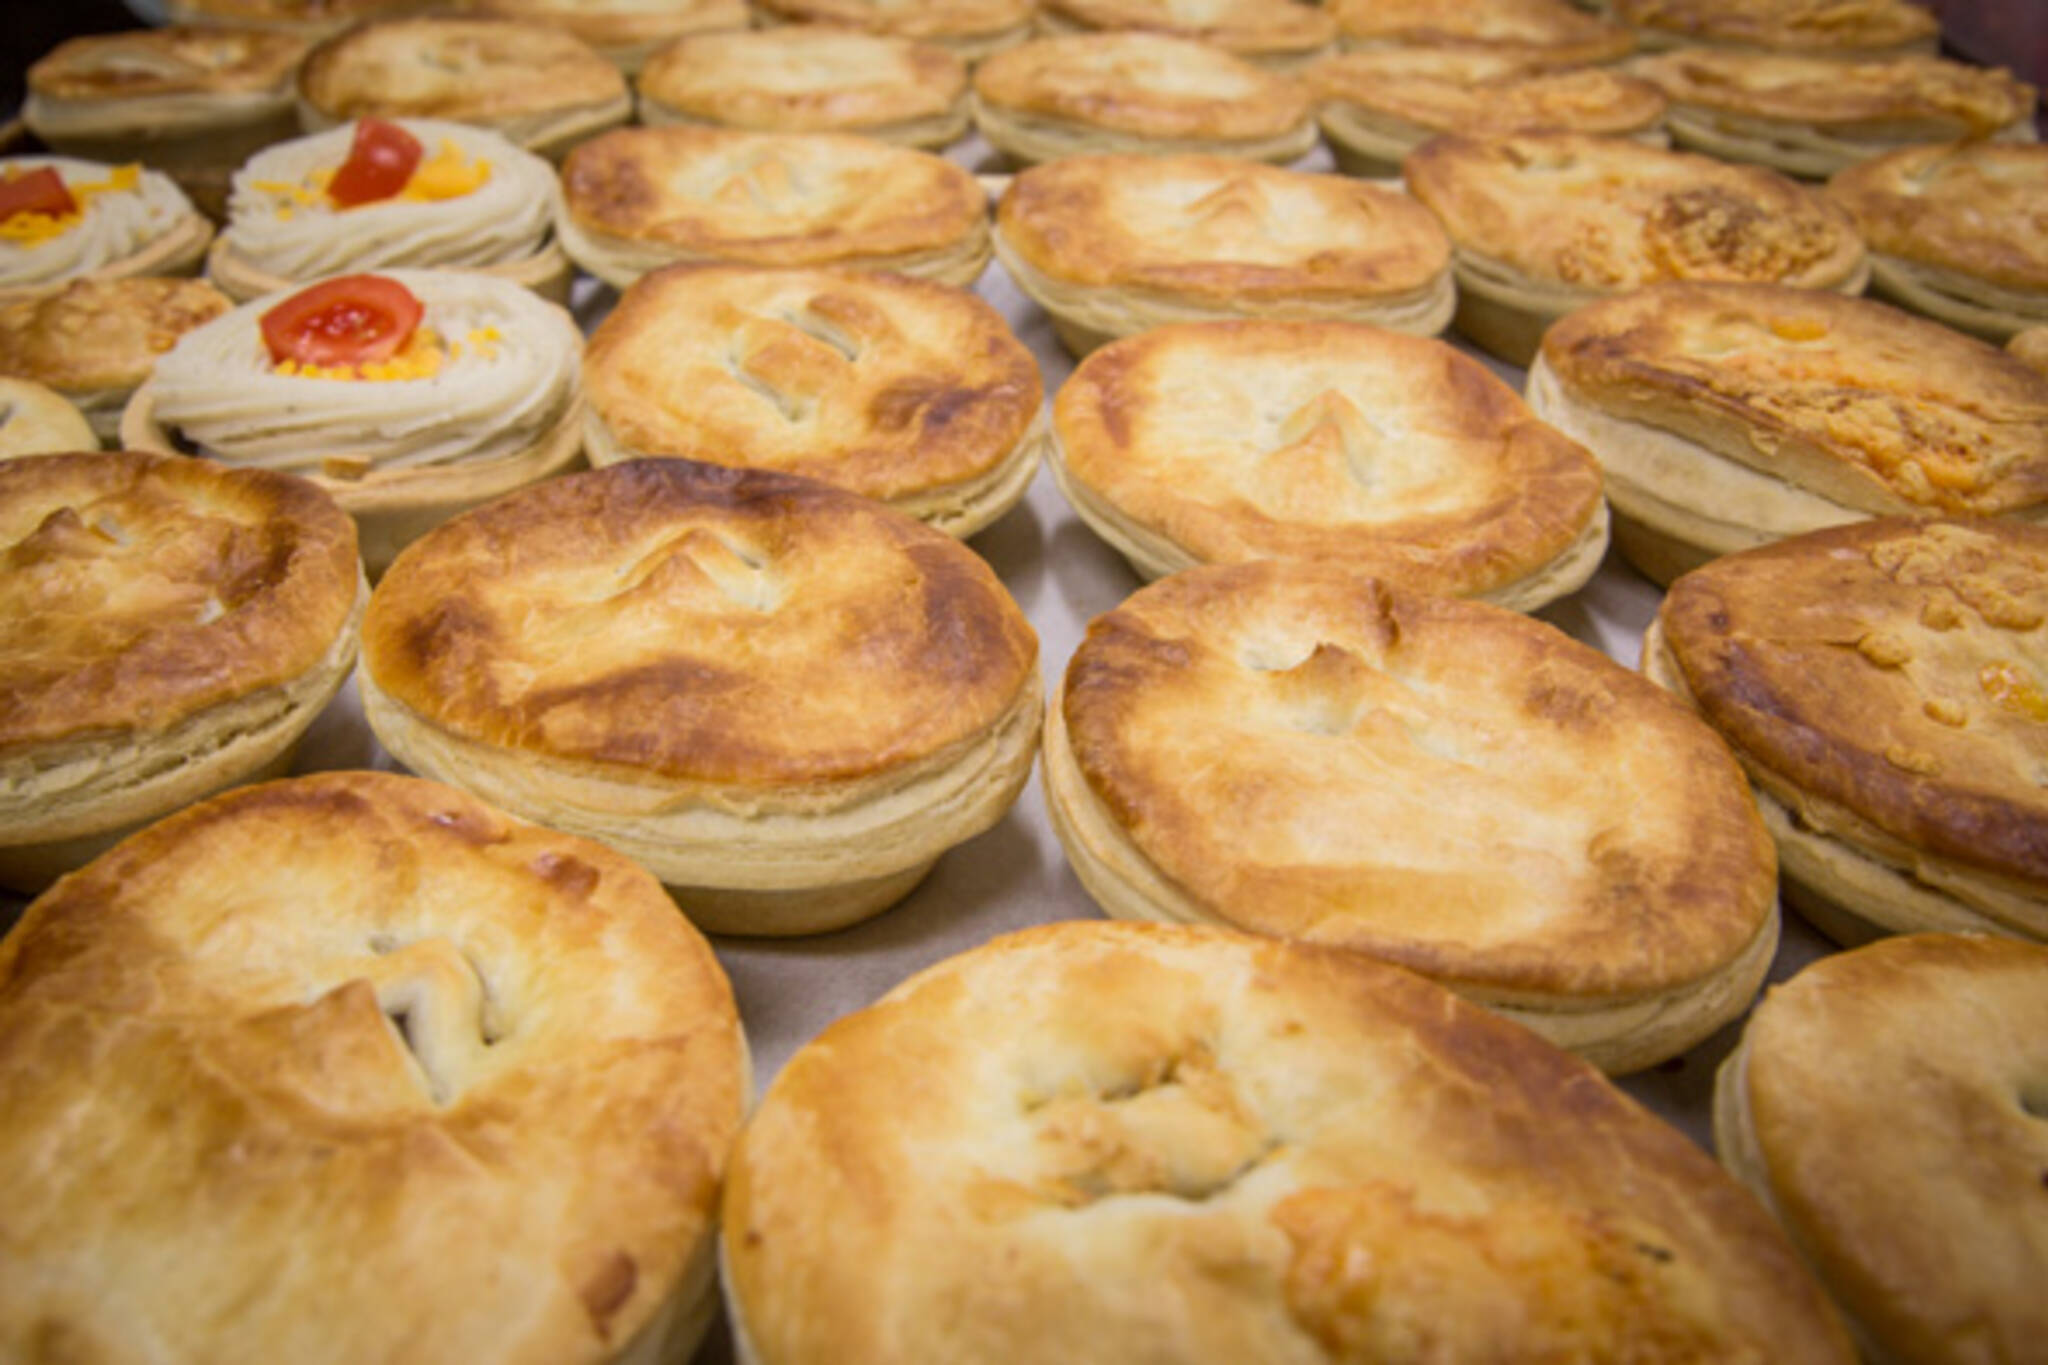 wiseys pies and bakehouse toronto